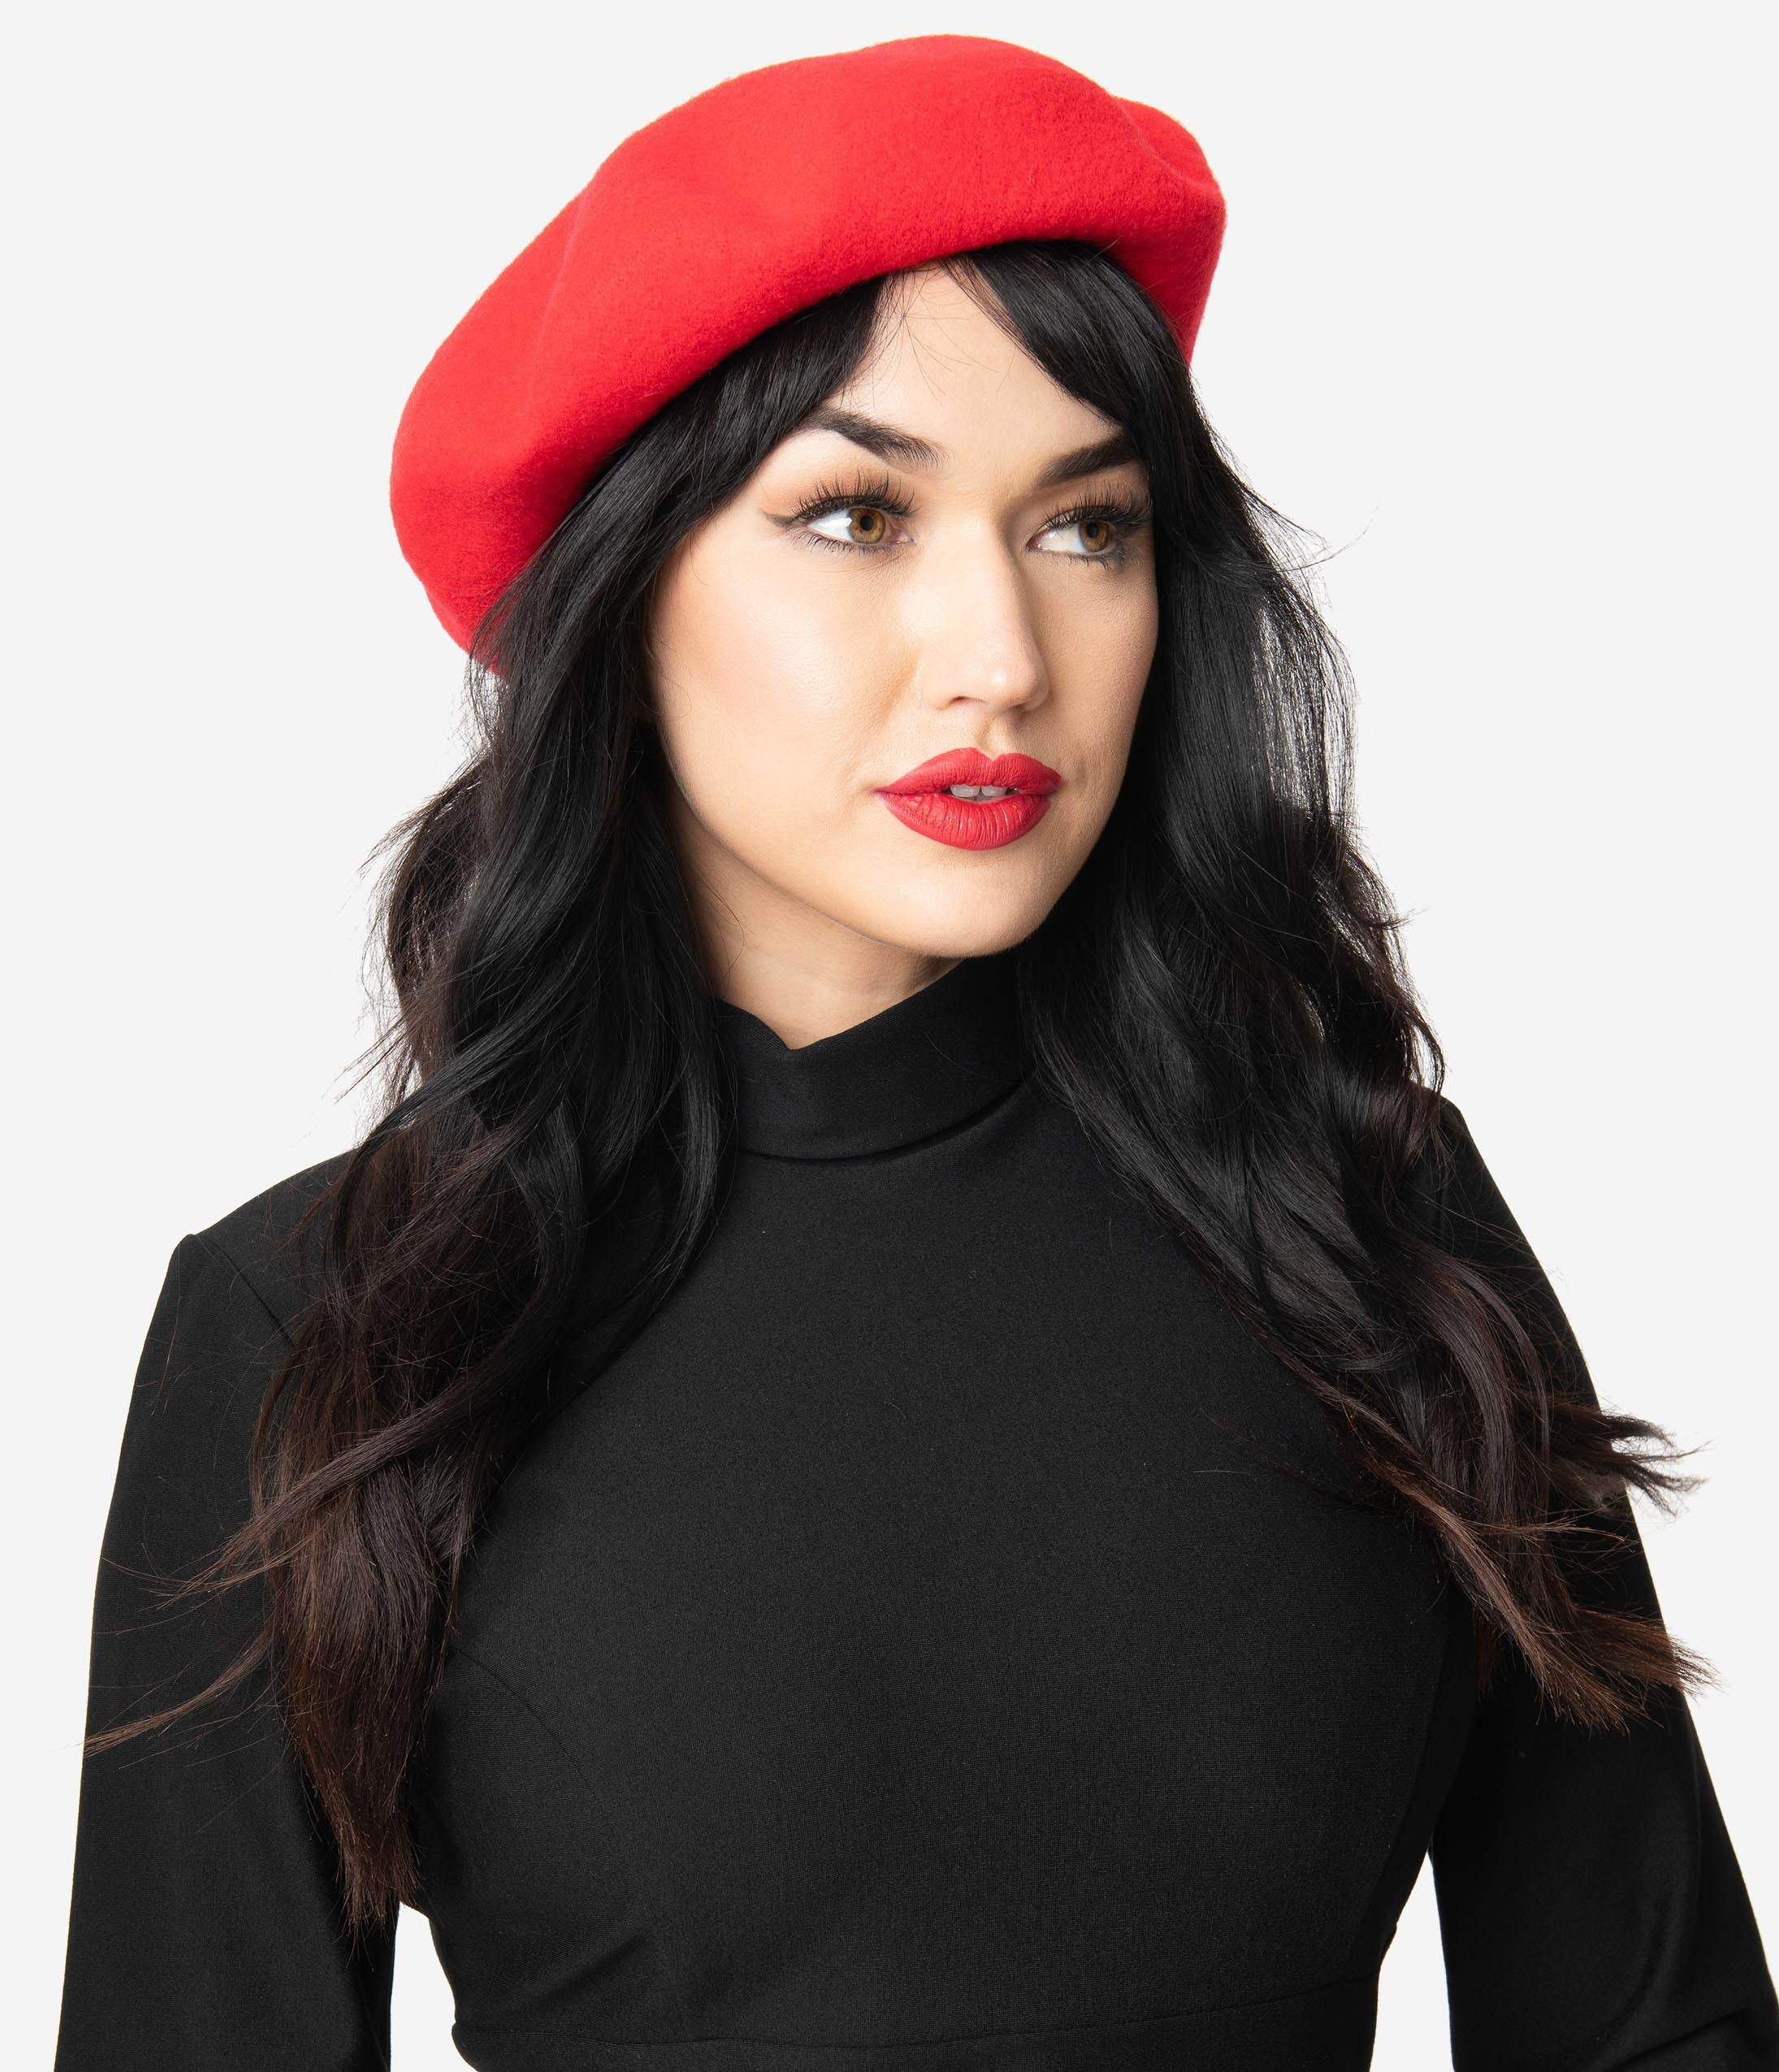 1930s Style Hats | Buy 30s Ladies Hats Retro Style Red Wool Beret $18.00 AT vintagedancer.com